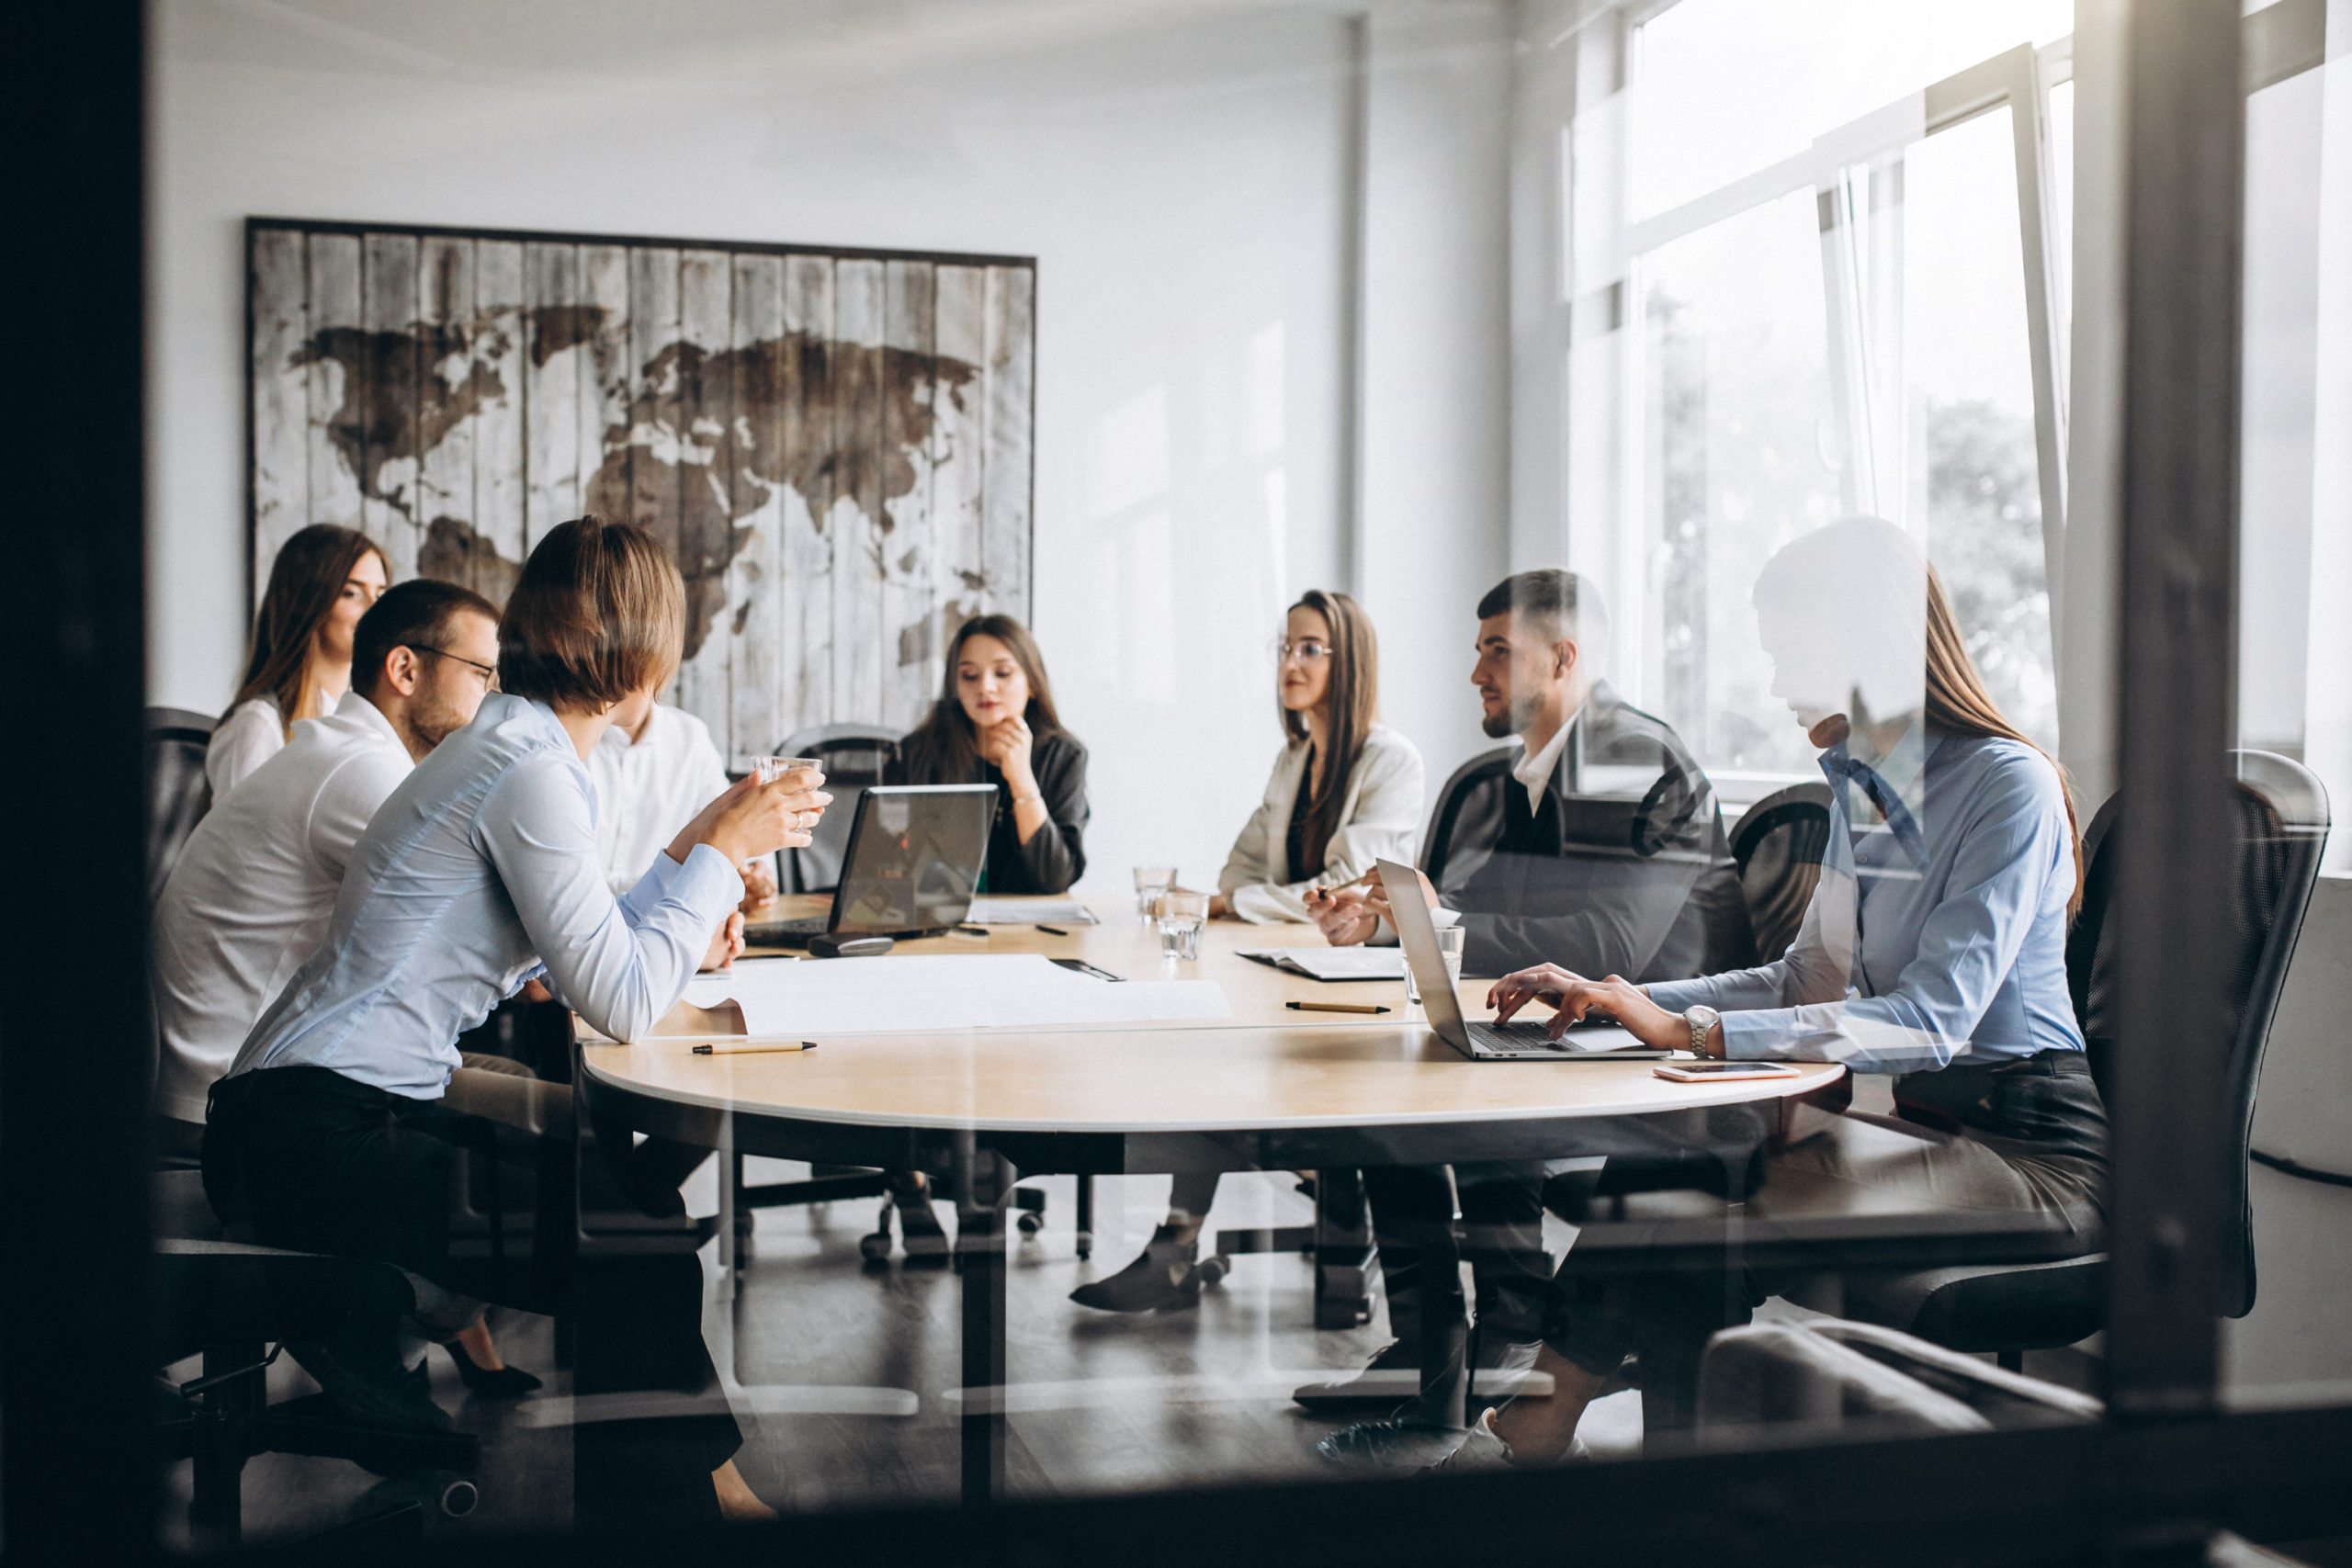 Group of people having a business meeting in an office